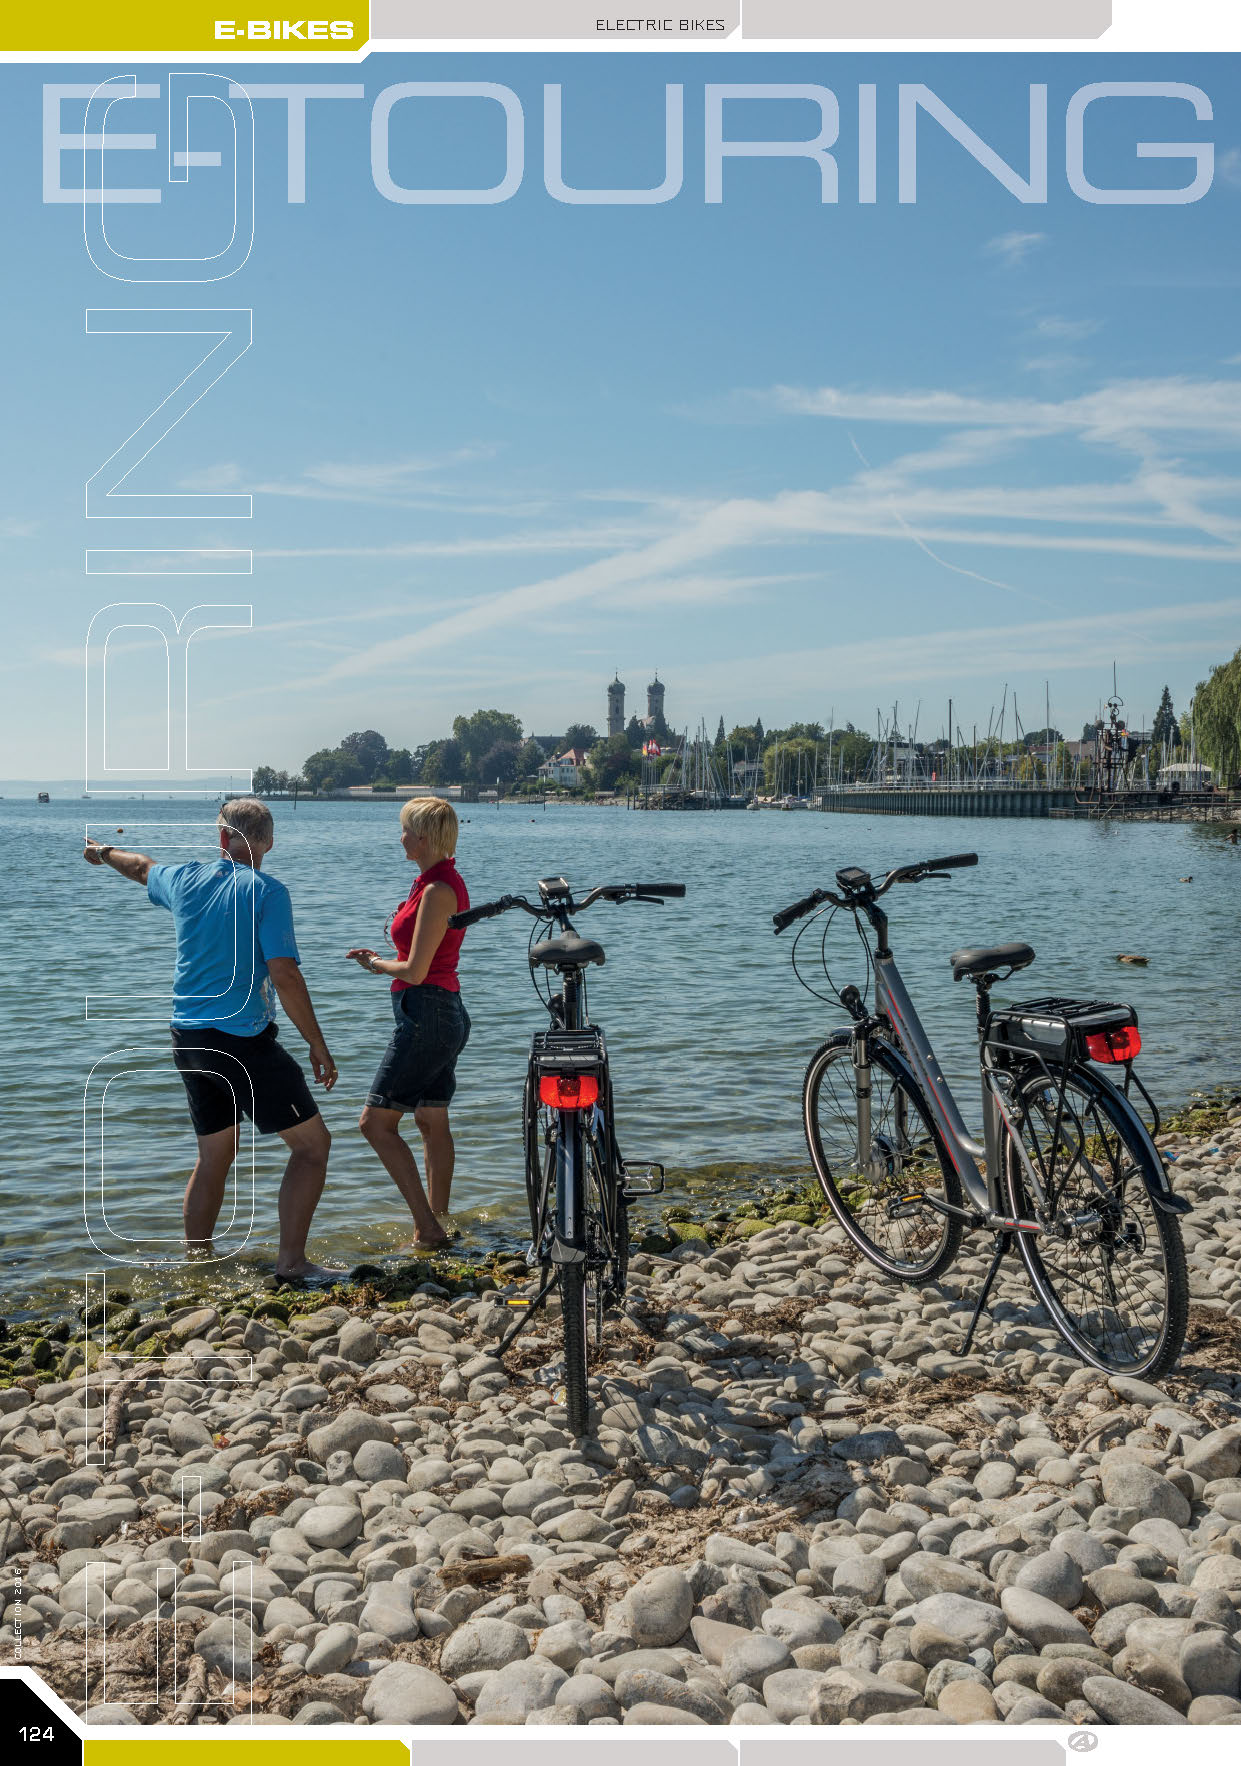 E-TOURING - electric bikes